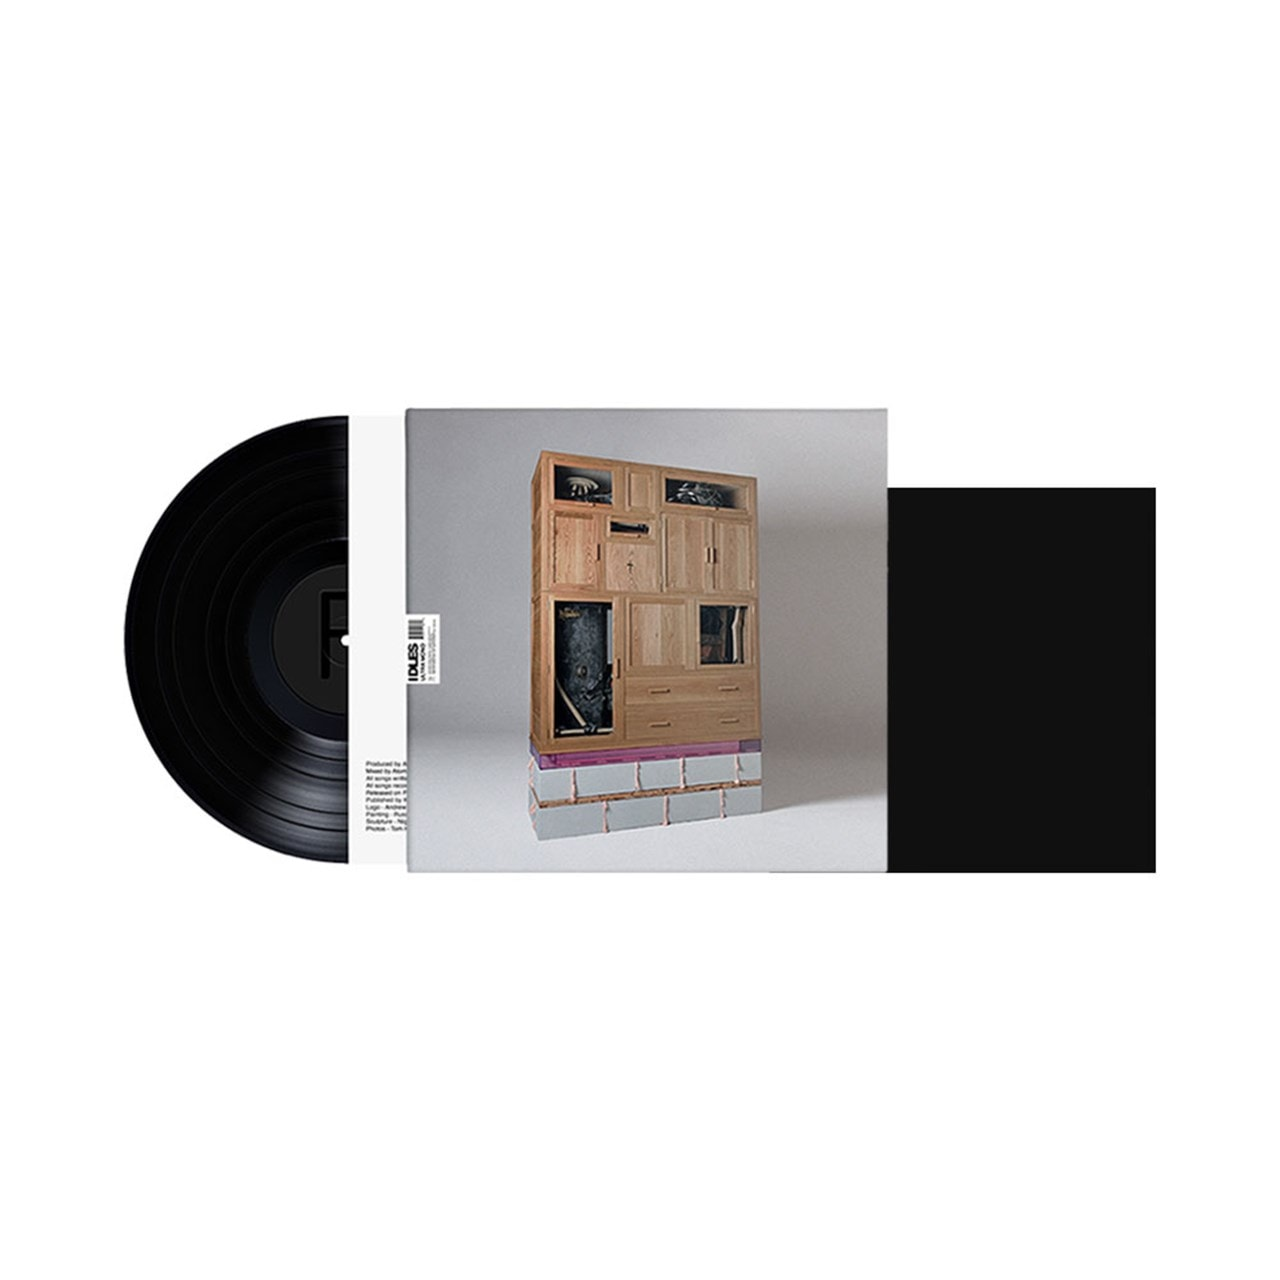 Ultra Mono (Limited Edition Deluxe Vinyl) - 2